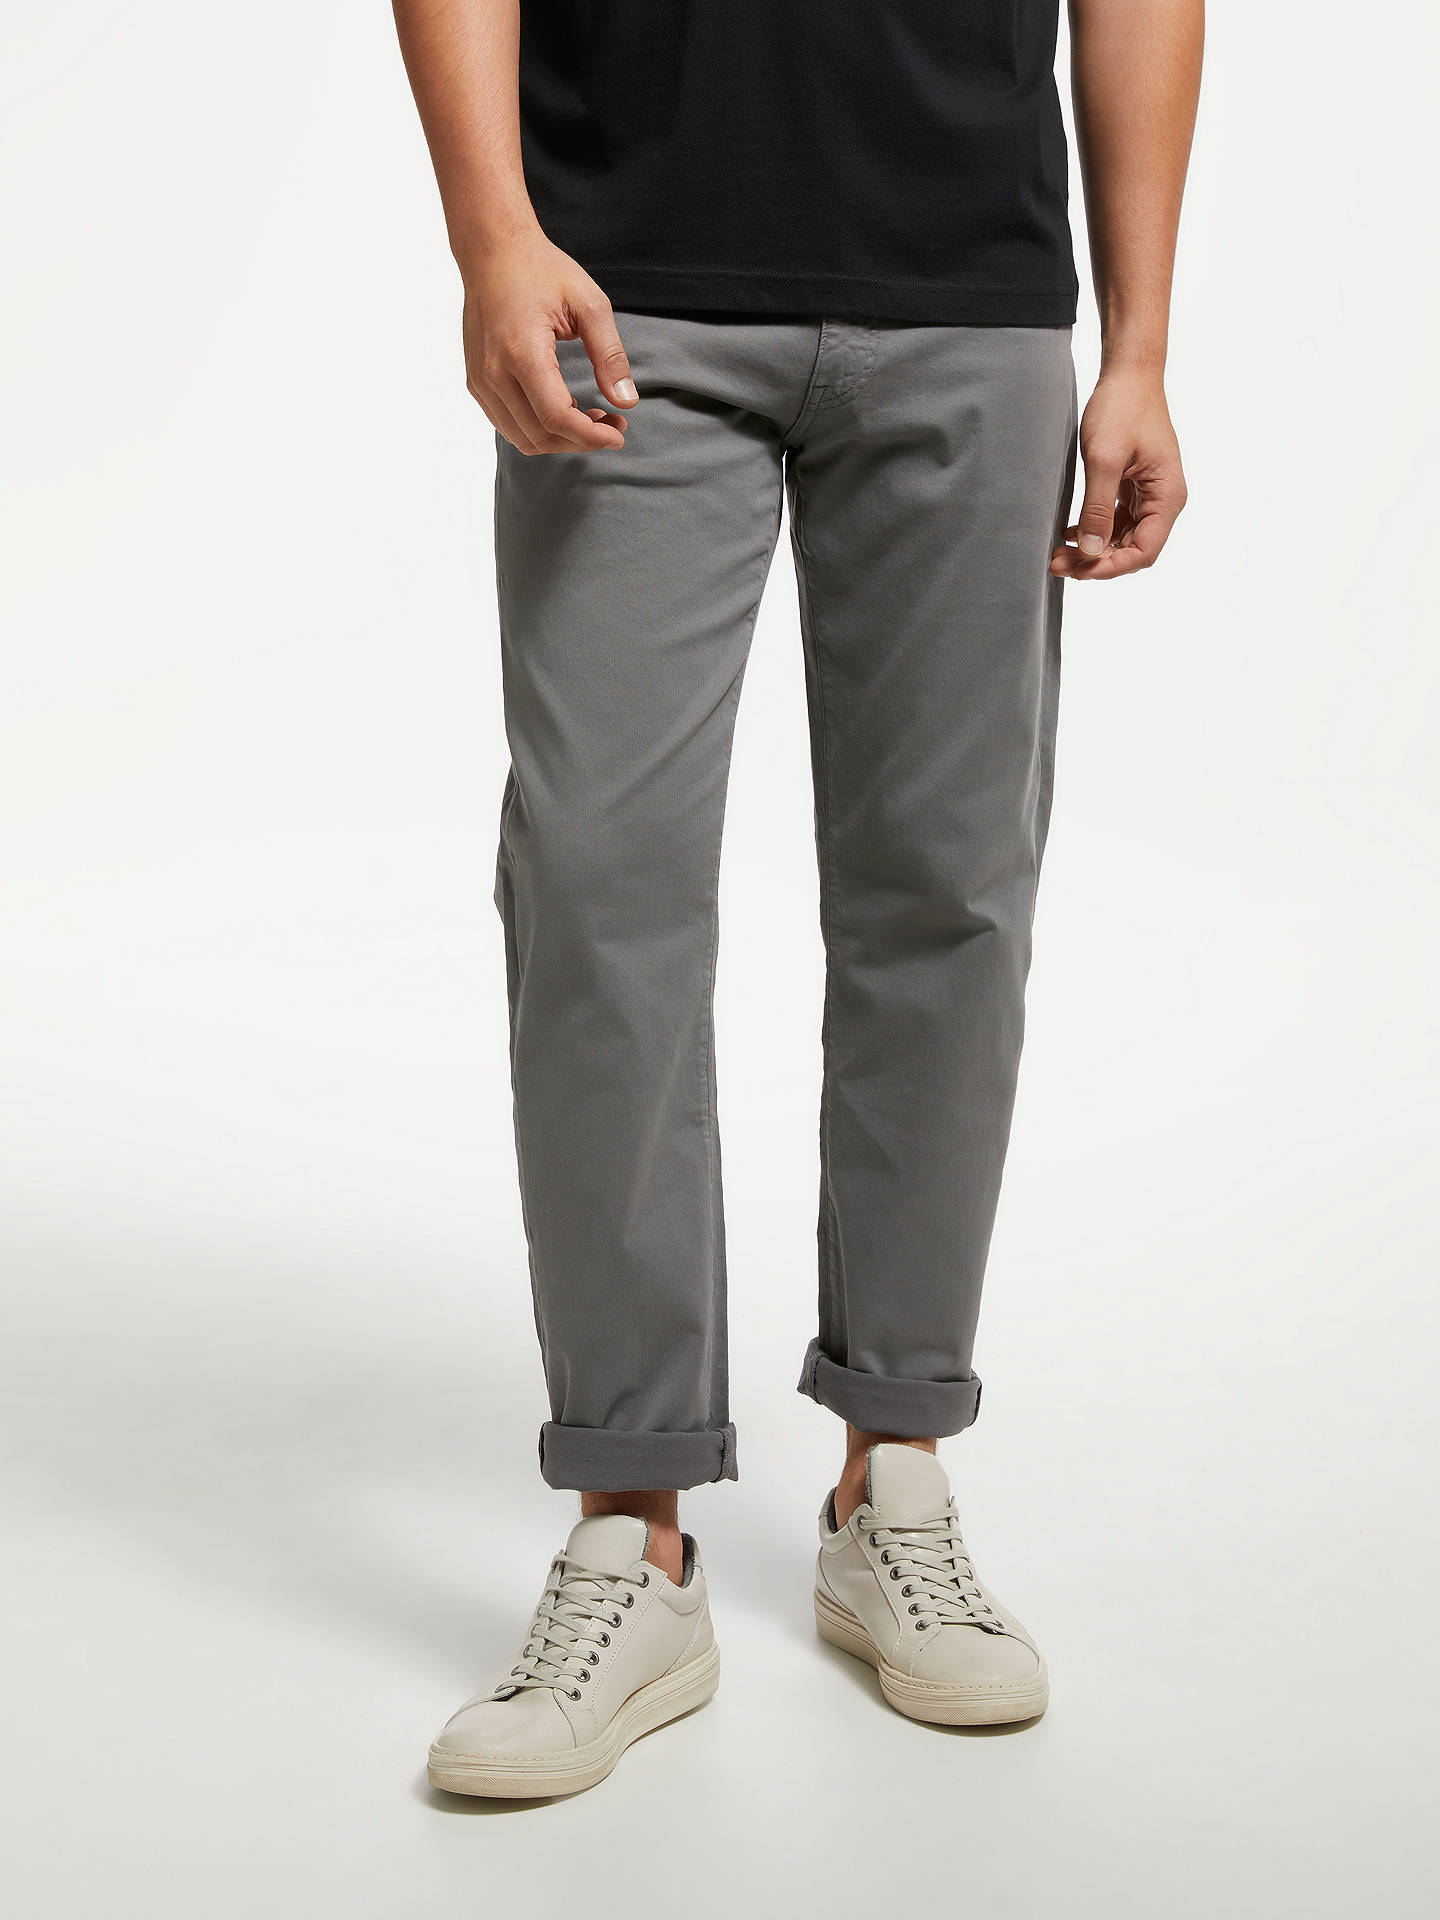 564392db38 Buy GANT Regular Straight Fit Desert Twill Jeans, Grey, 40R Online at  johnlewis.